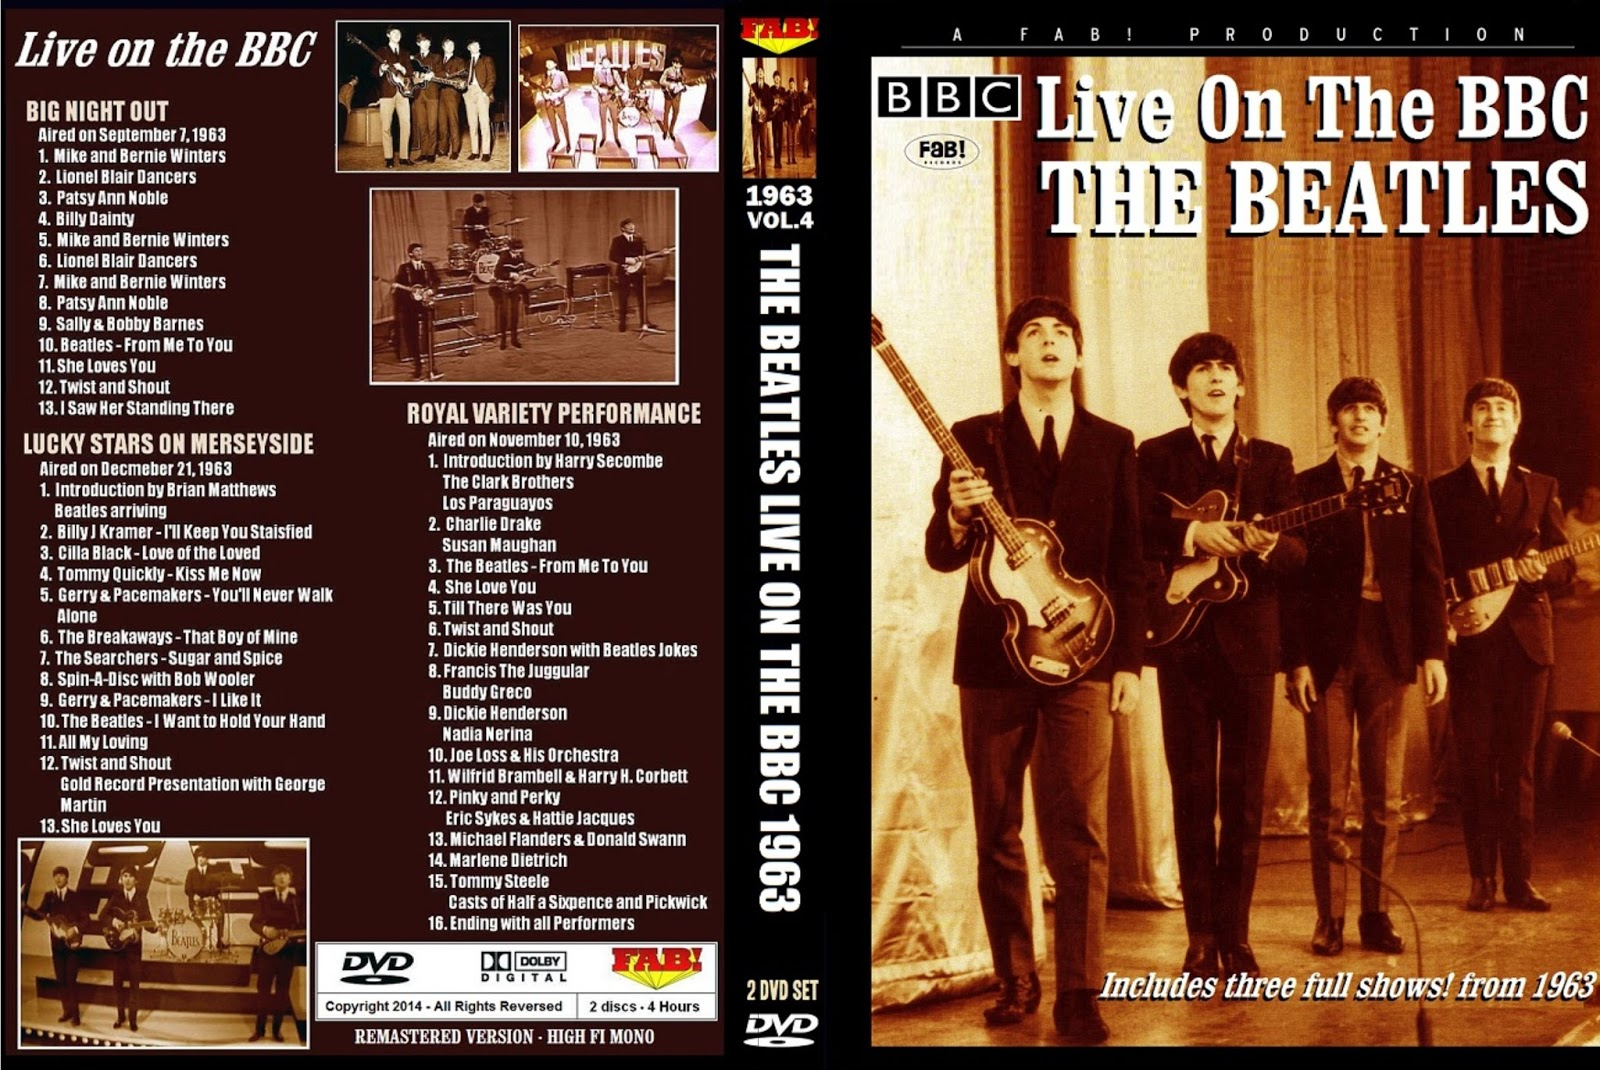 The Beatles - Live On The BBC 1963 DVD